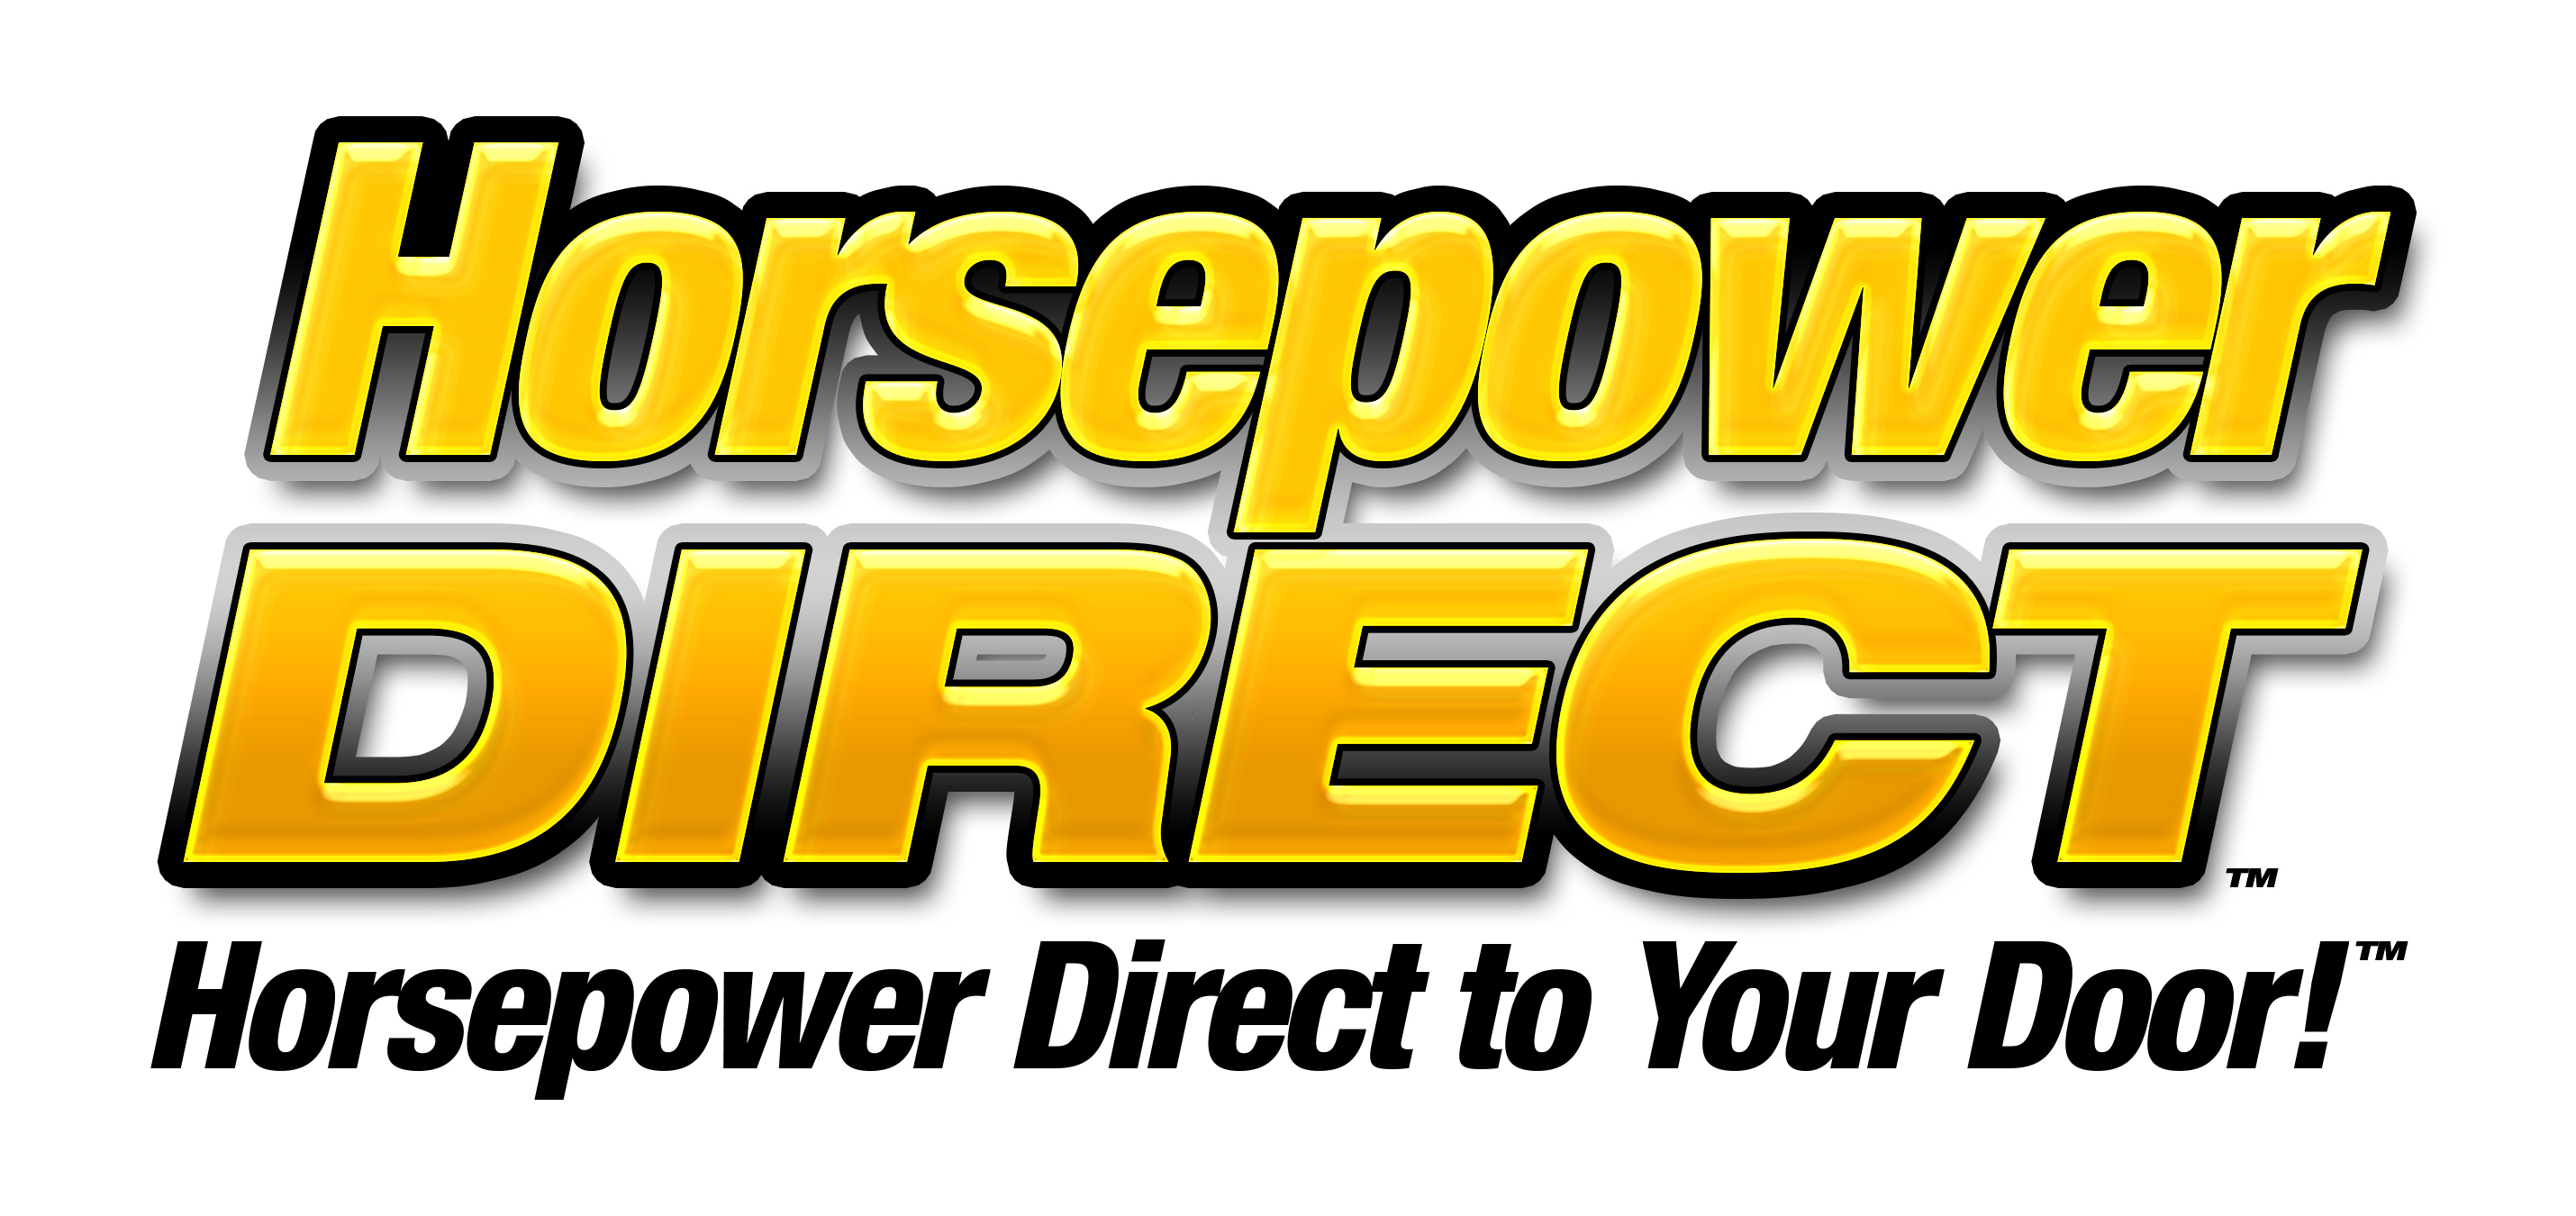 Horsepower Direct LLC Help Center home page